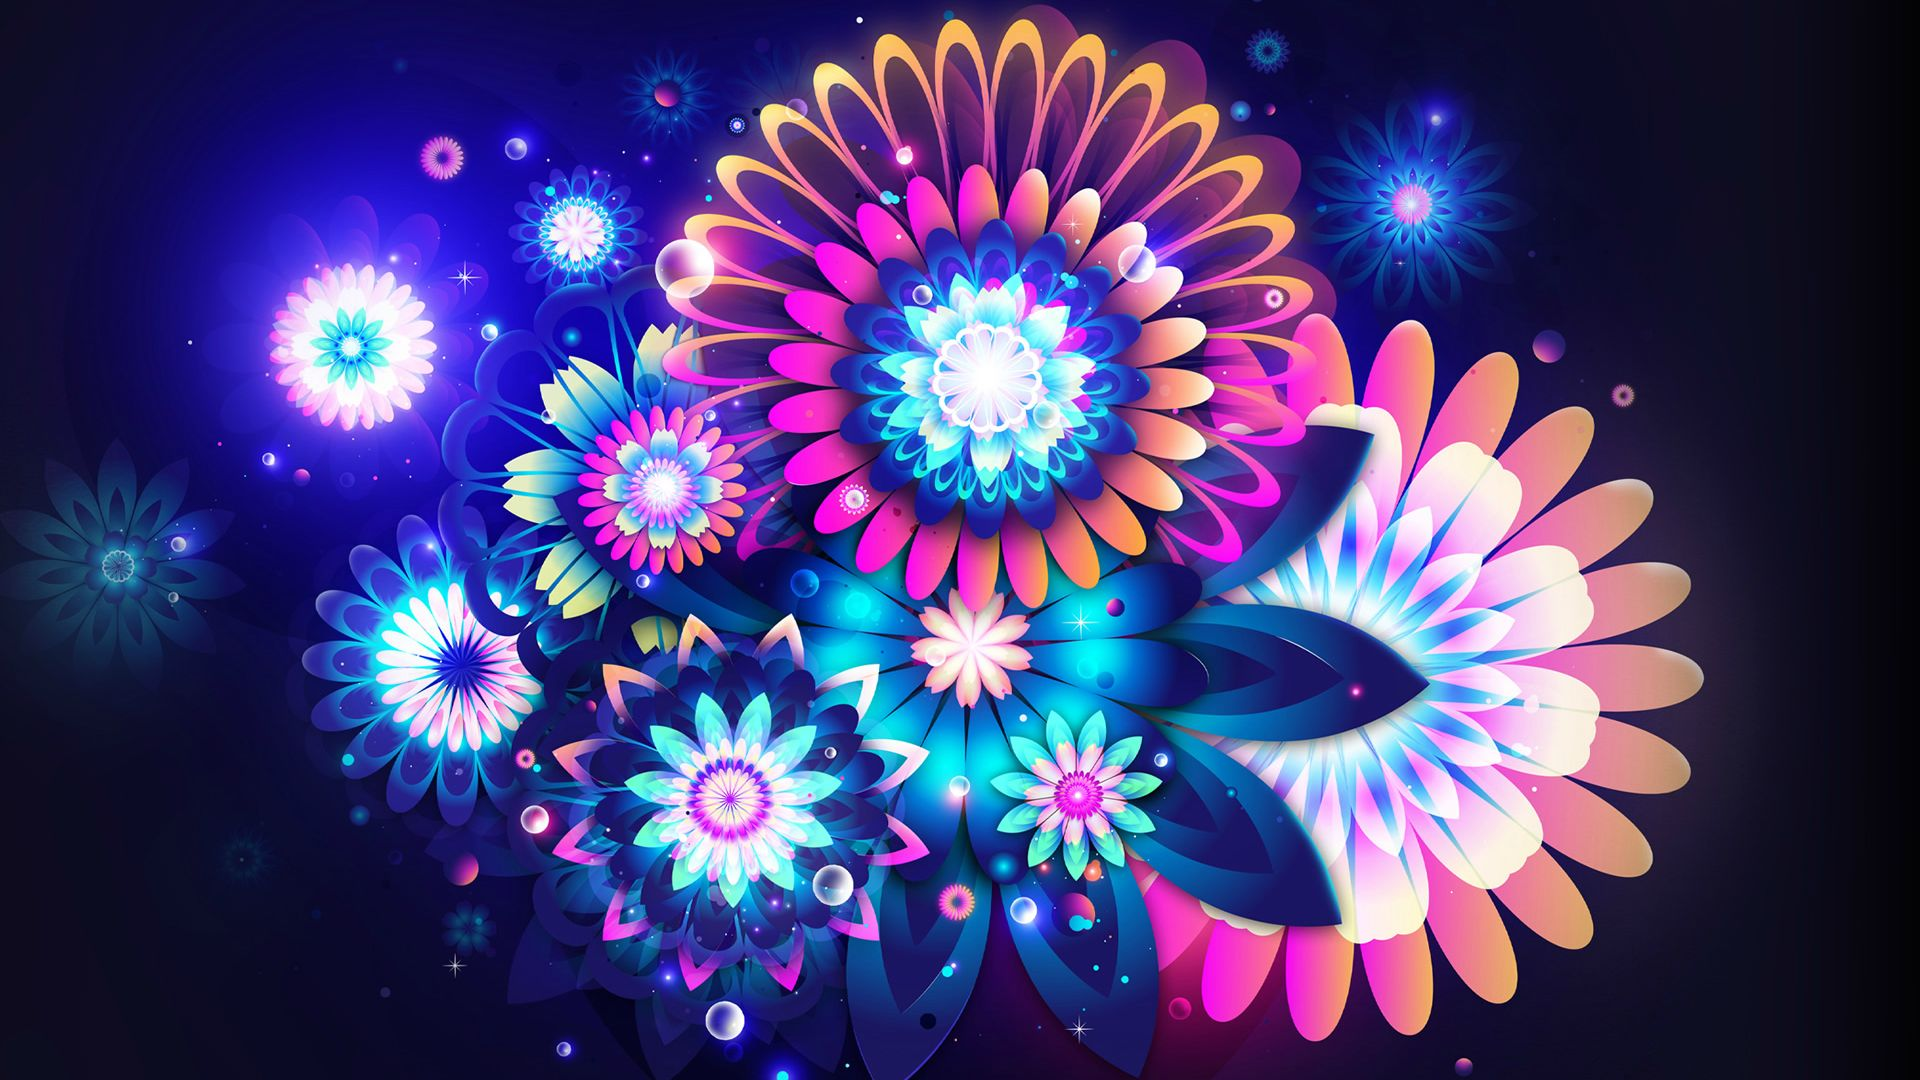 Free Download Flowers Neon Color Wallpaper 1920x1080 45225